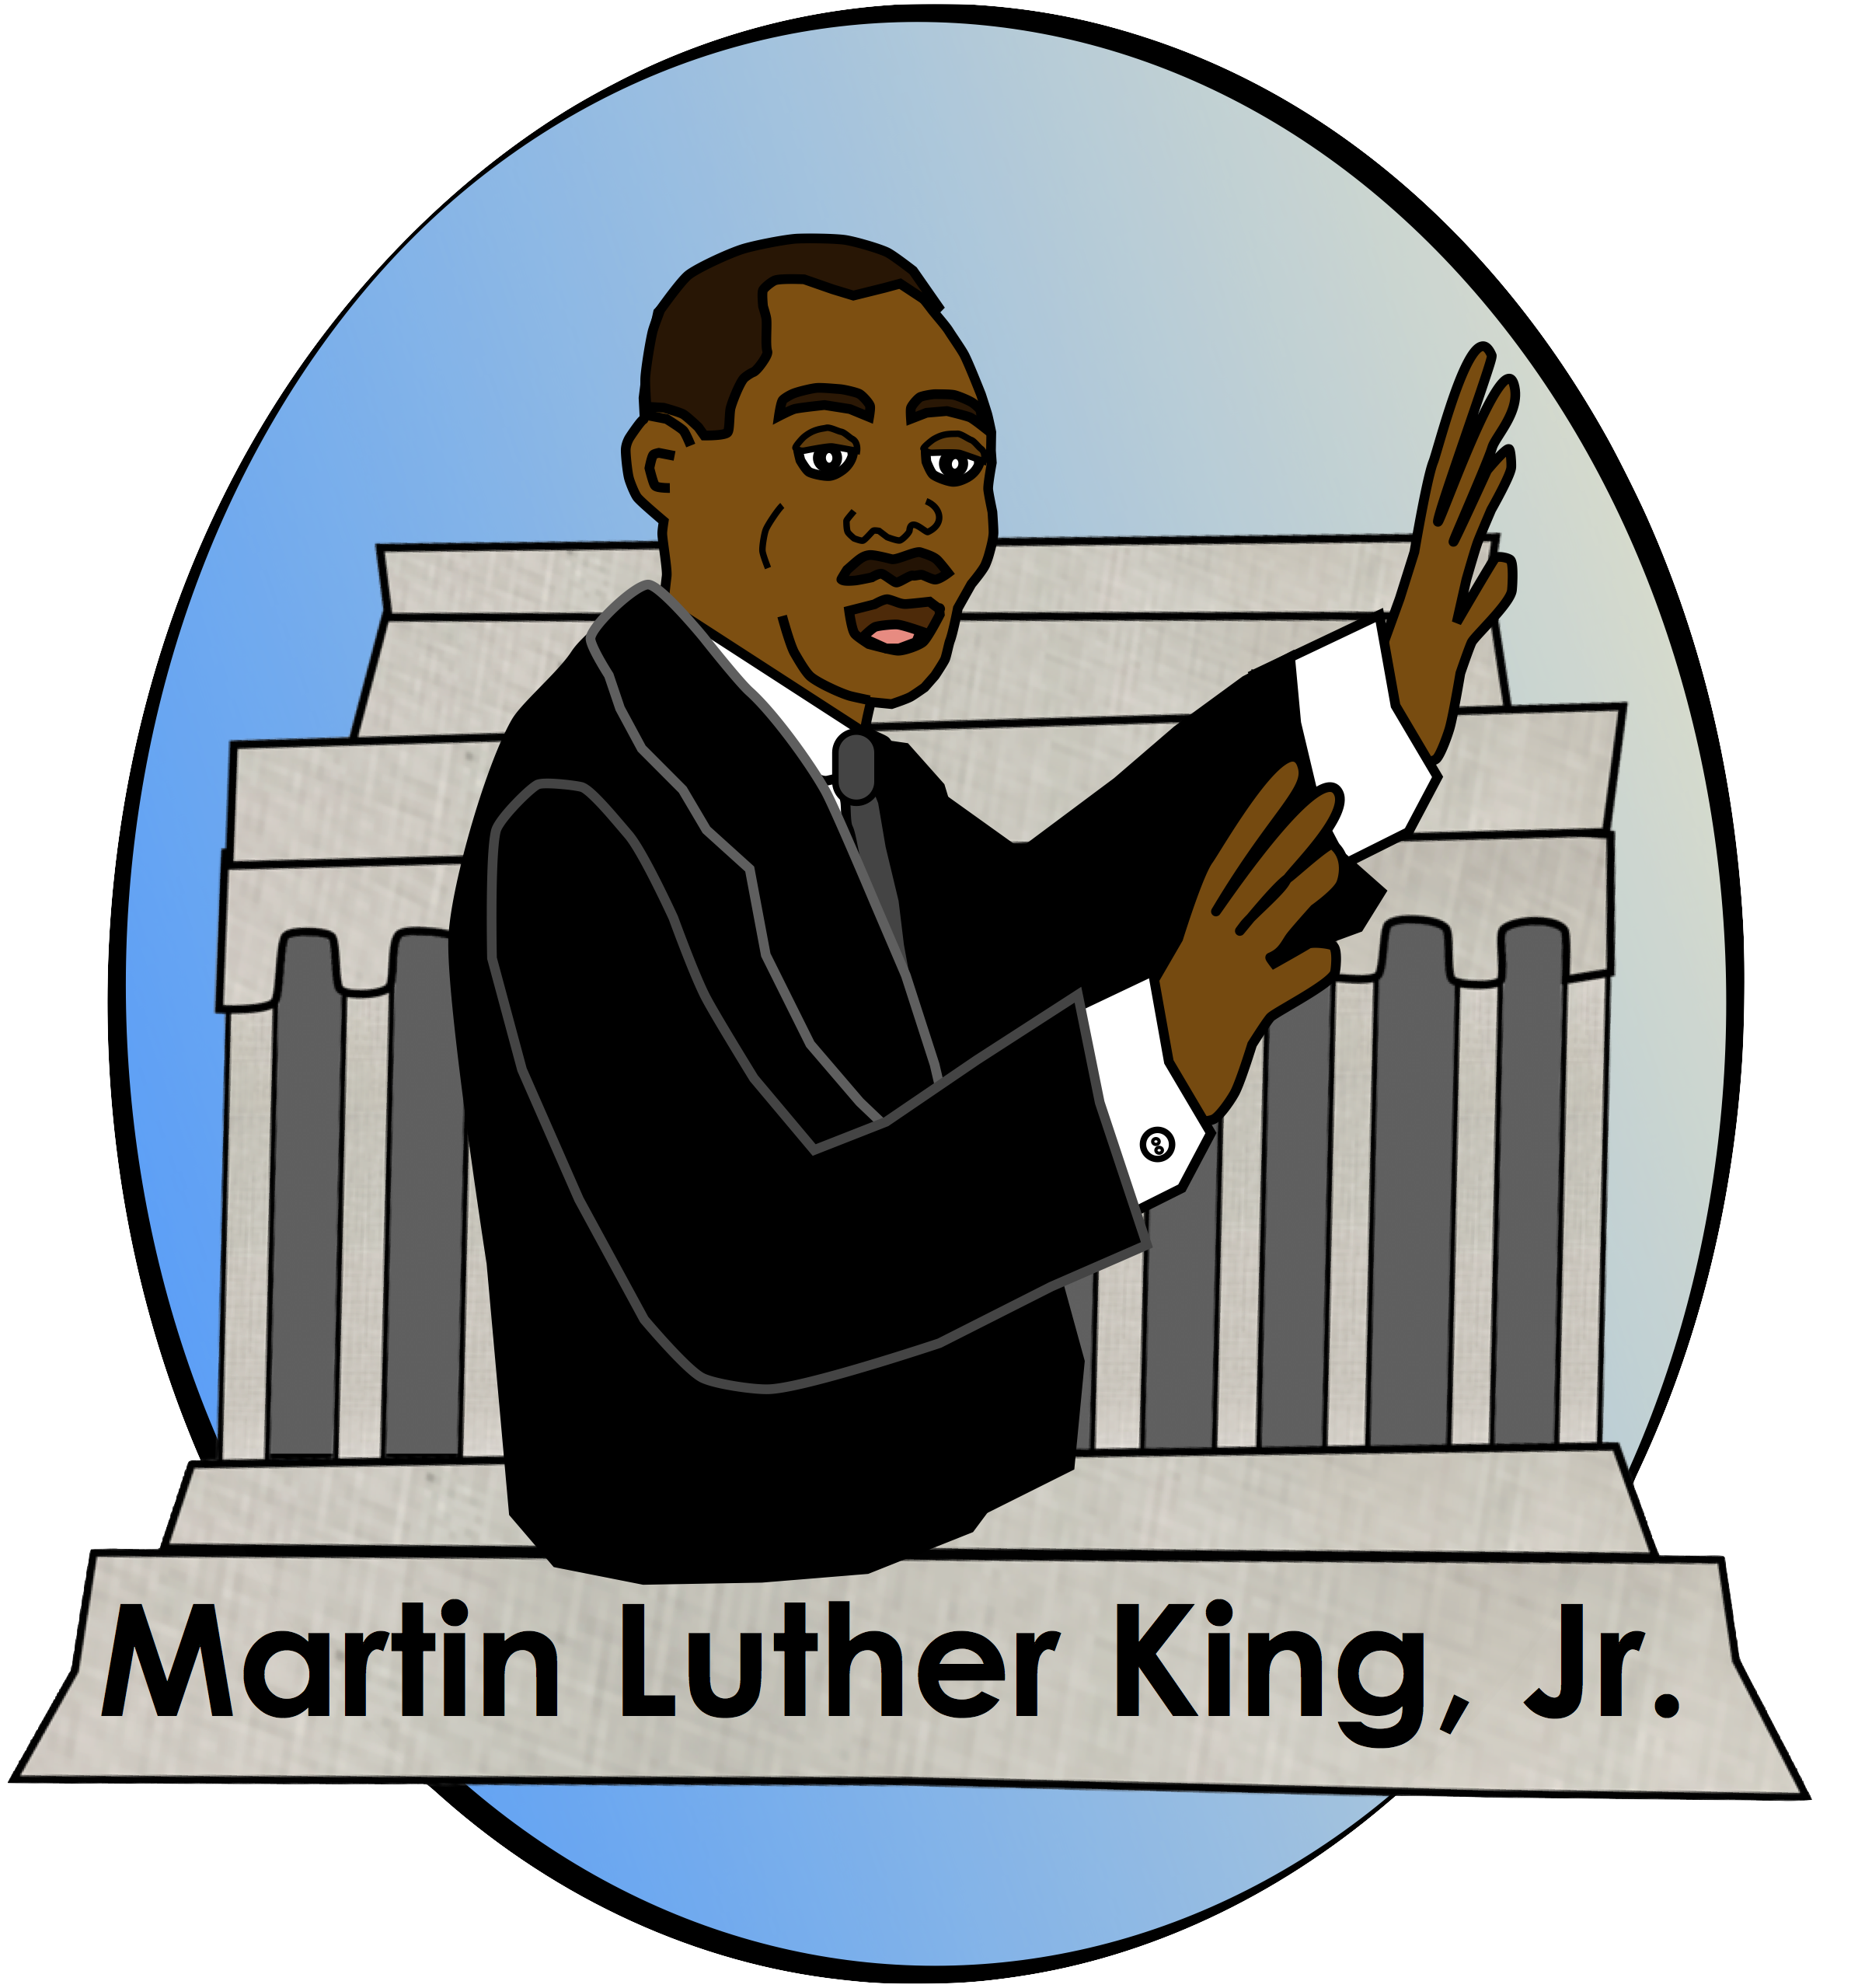 medium resolution of free martin luther king jr clip art from charlotte s clips